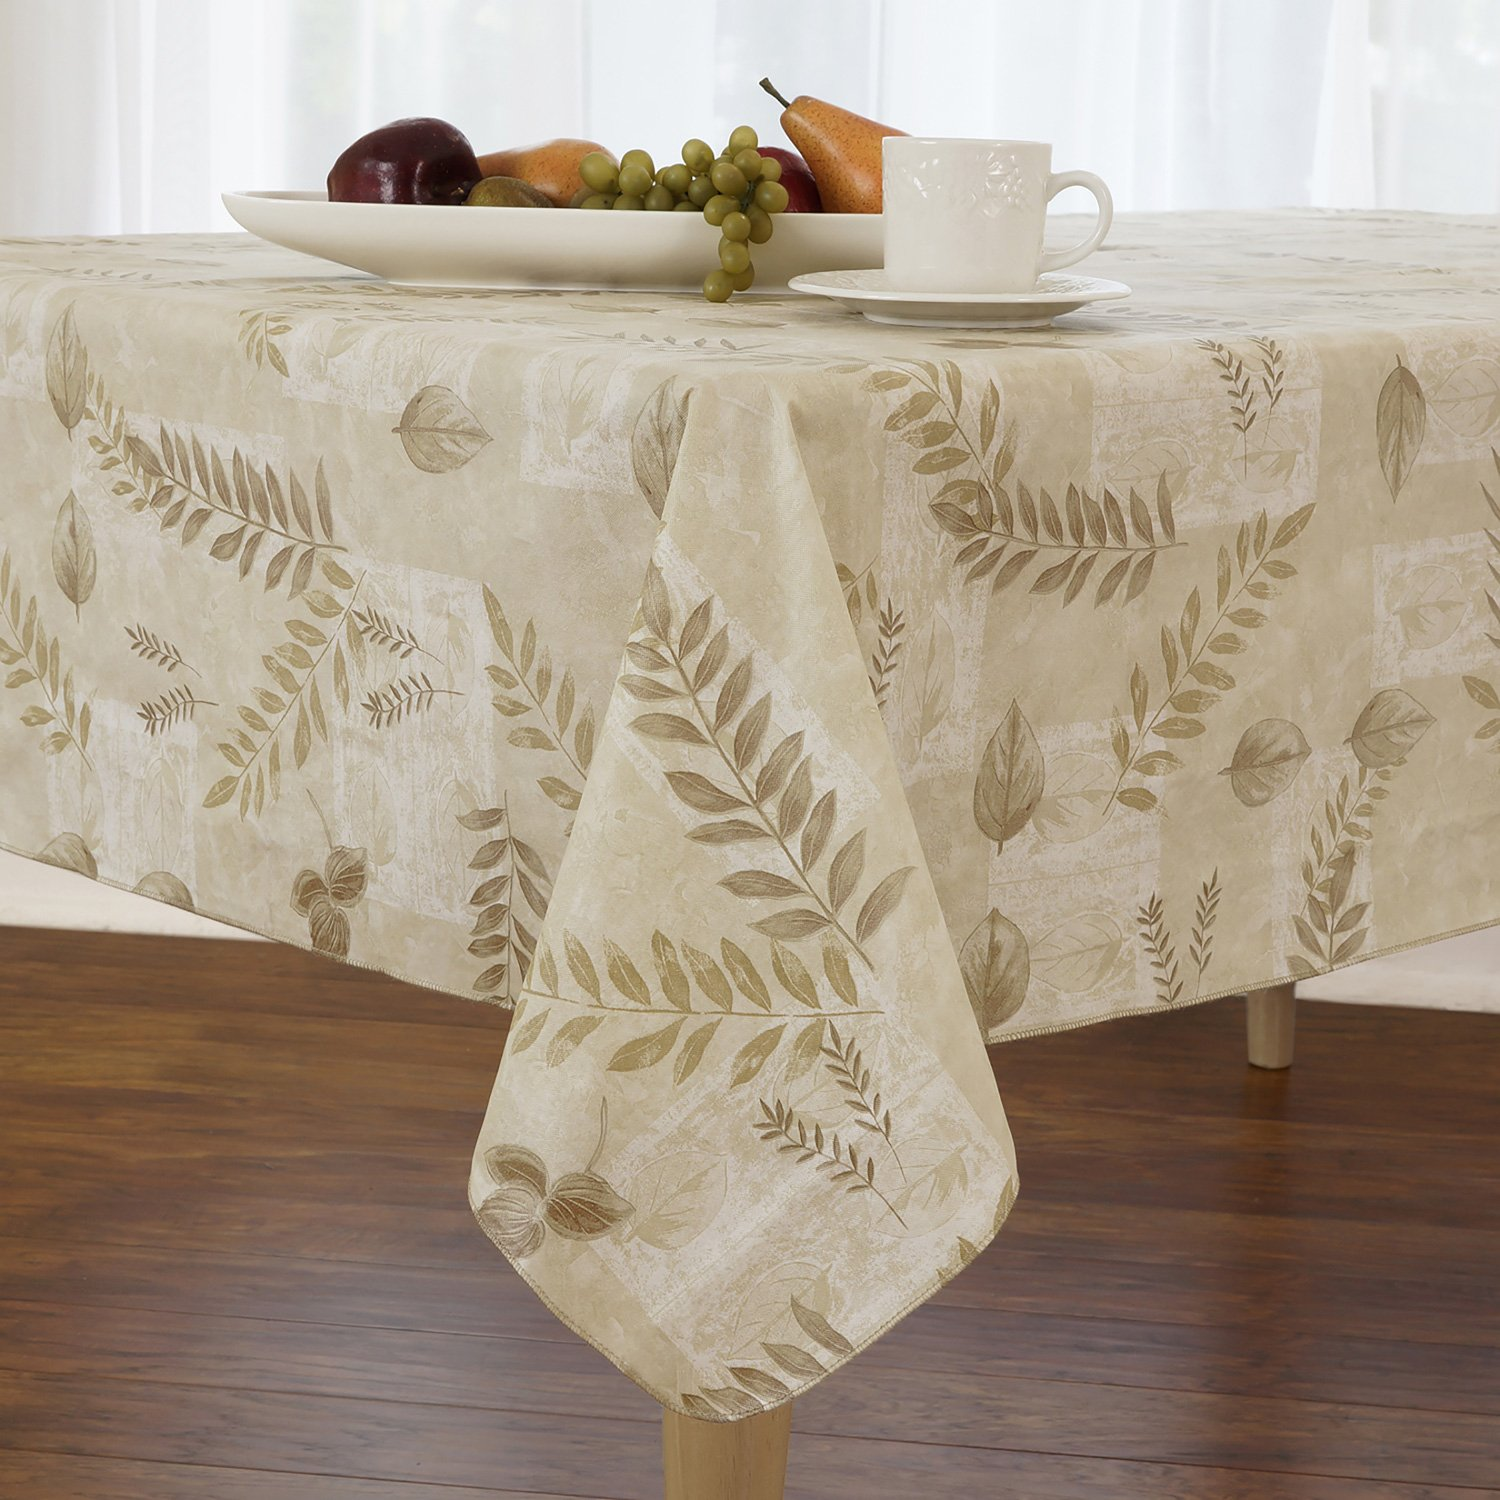 Everyday Luxuries Boxed Fern Flannel Backed Vinyl Tablecloth Indoor Outdoor, 52-Inch by 70-Inch Oval, Taupe